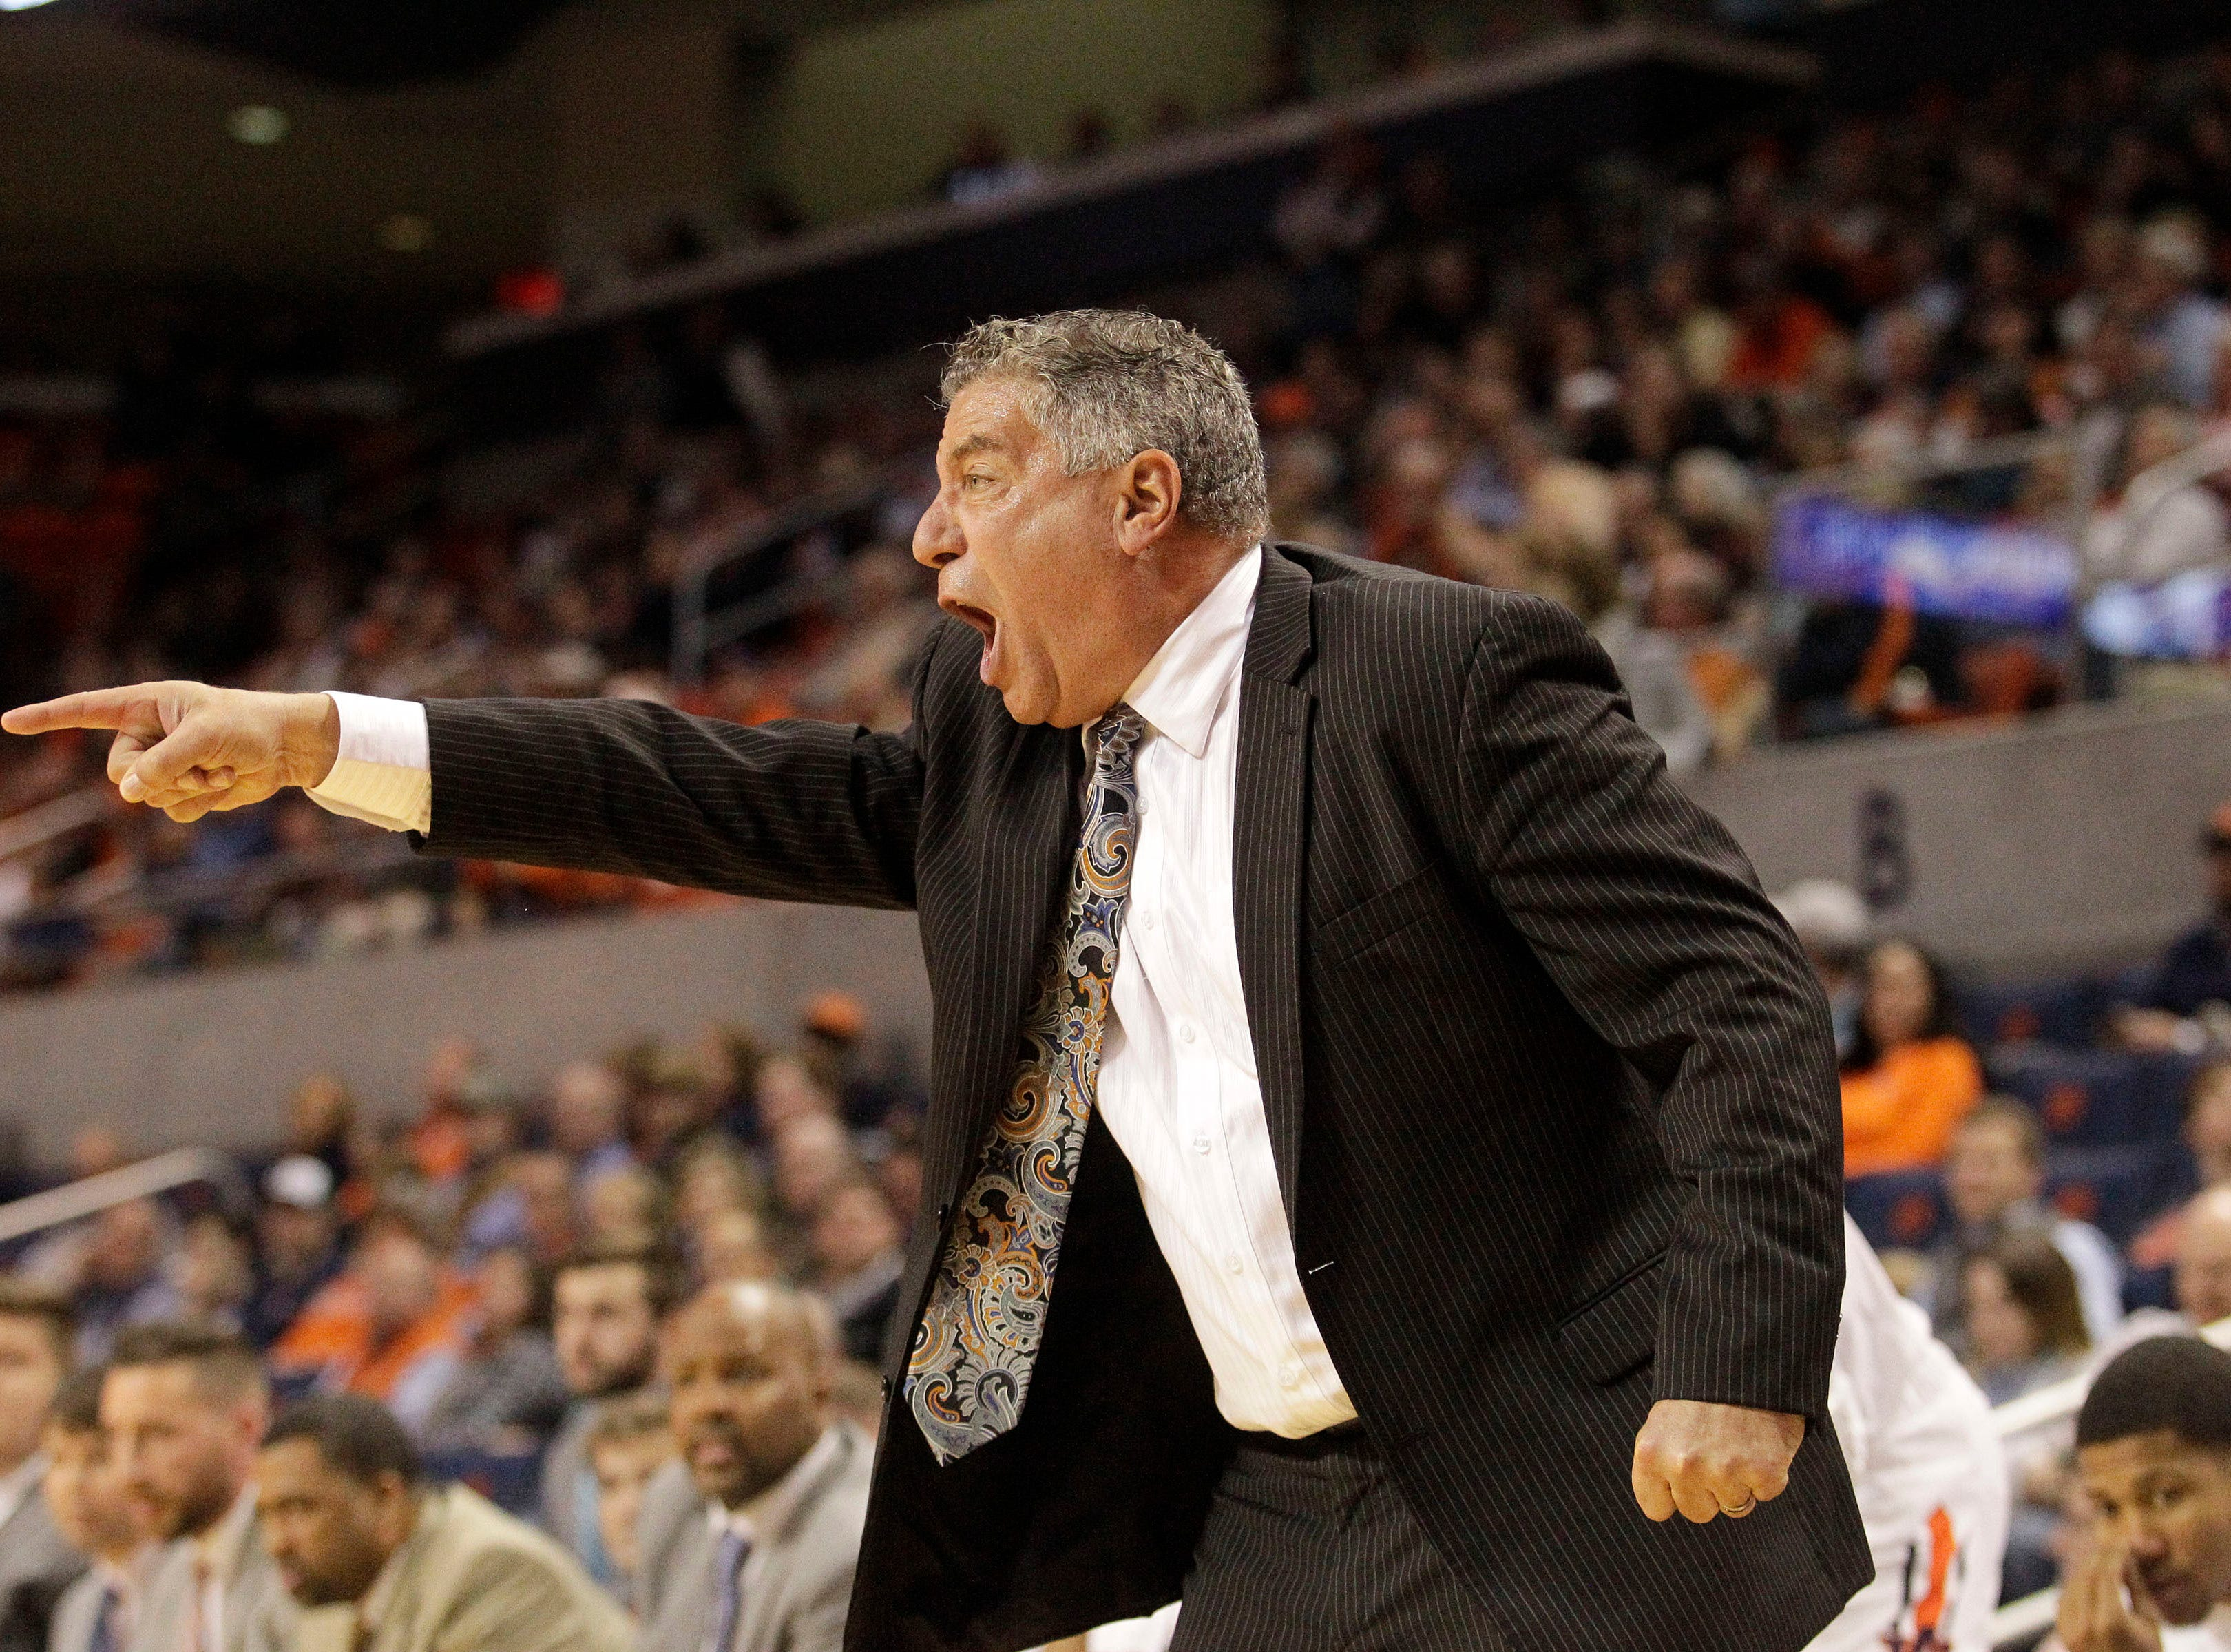 Dec 4, 2018; Auburn, AL, USA; Auburn Tigers head coach Bruce Pearl yells to his team during the first half against the UNC-Asheville Bulldogs at Auburn Arena. Mandatory Credit: John Reed-USA TODAY Sports